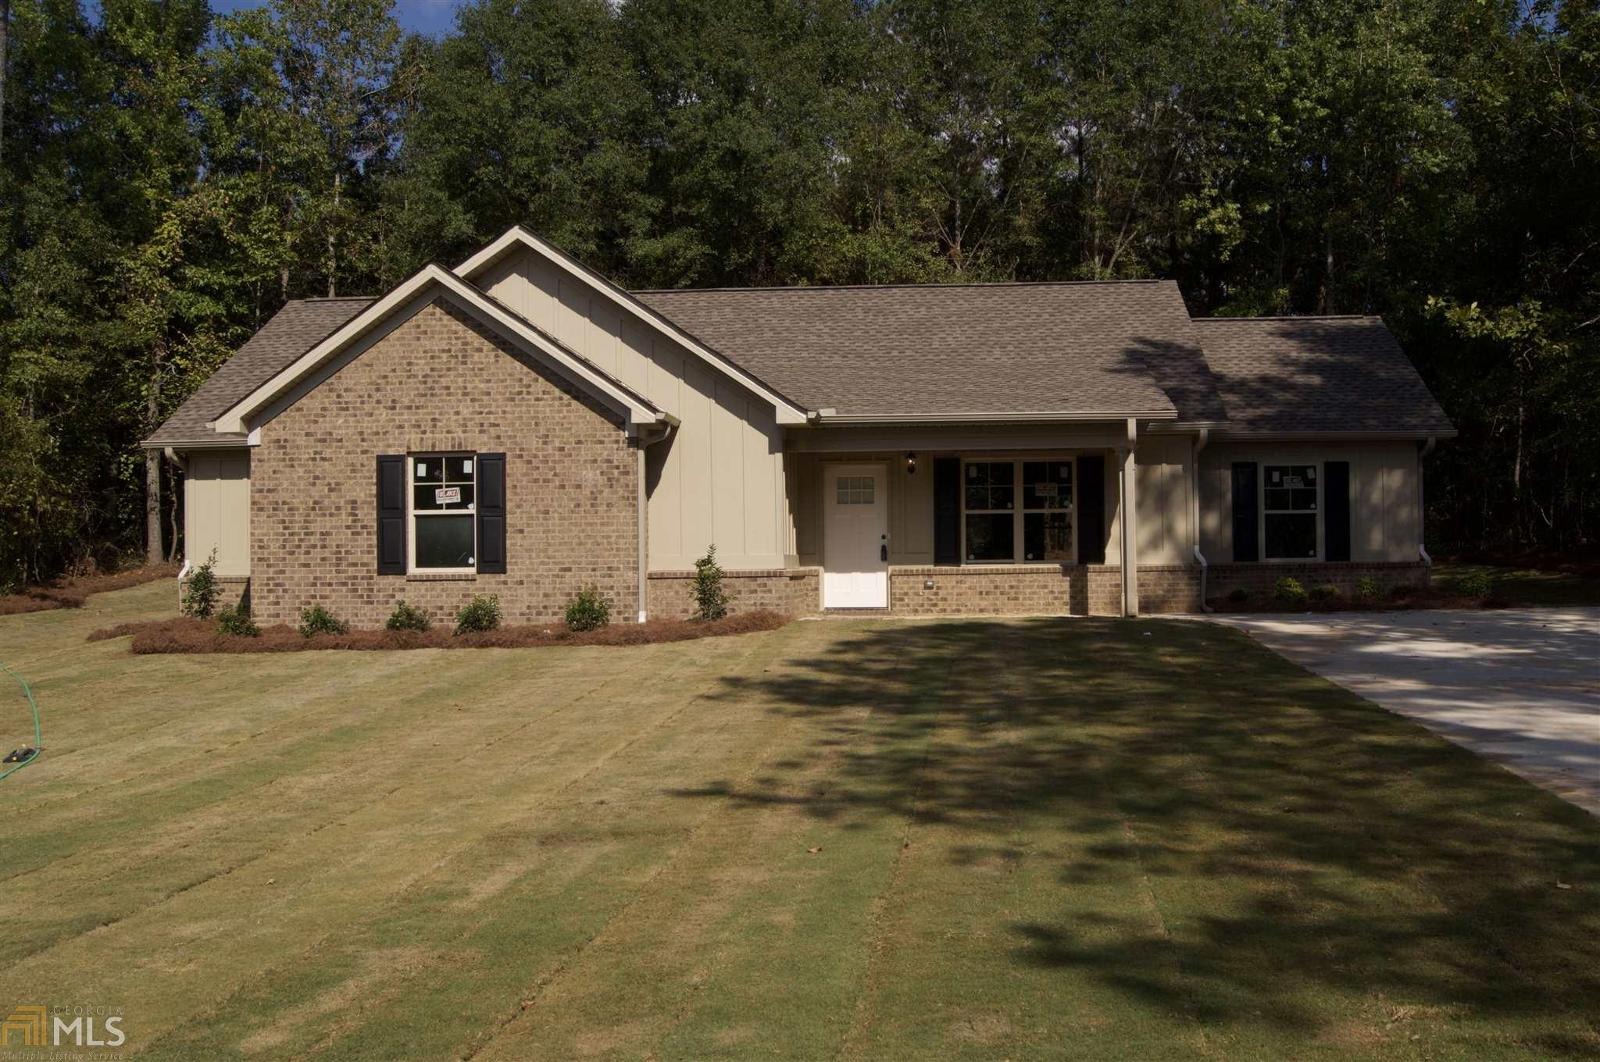 16 brookstone way zebulon ga mls 08070579 era